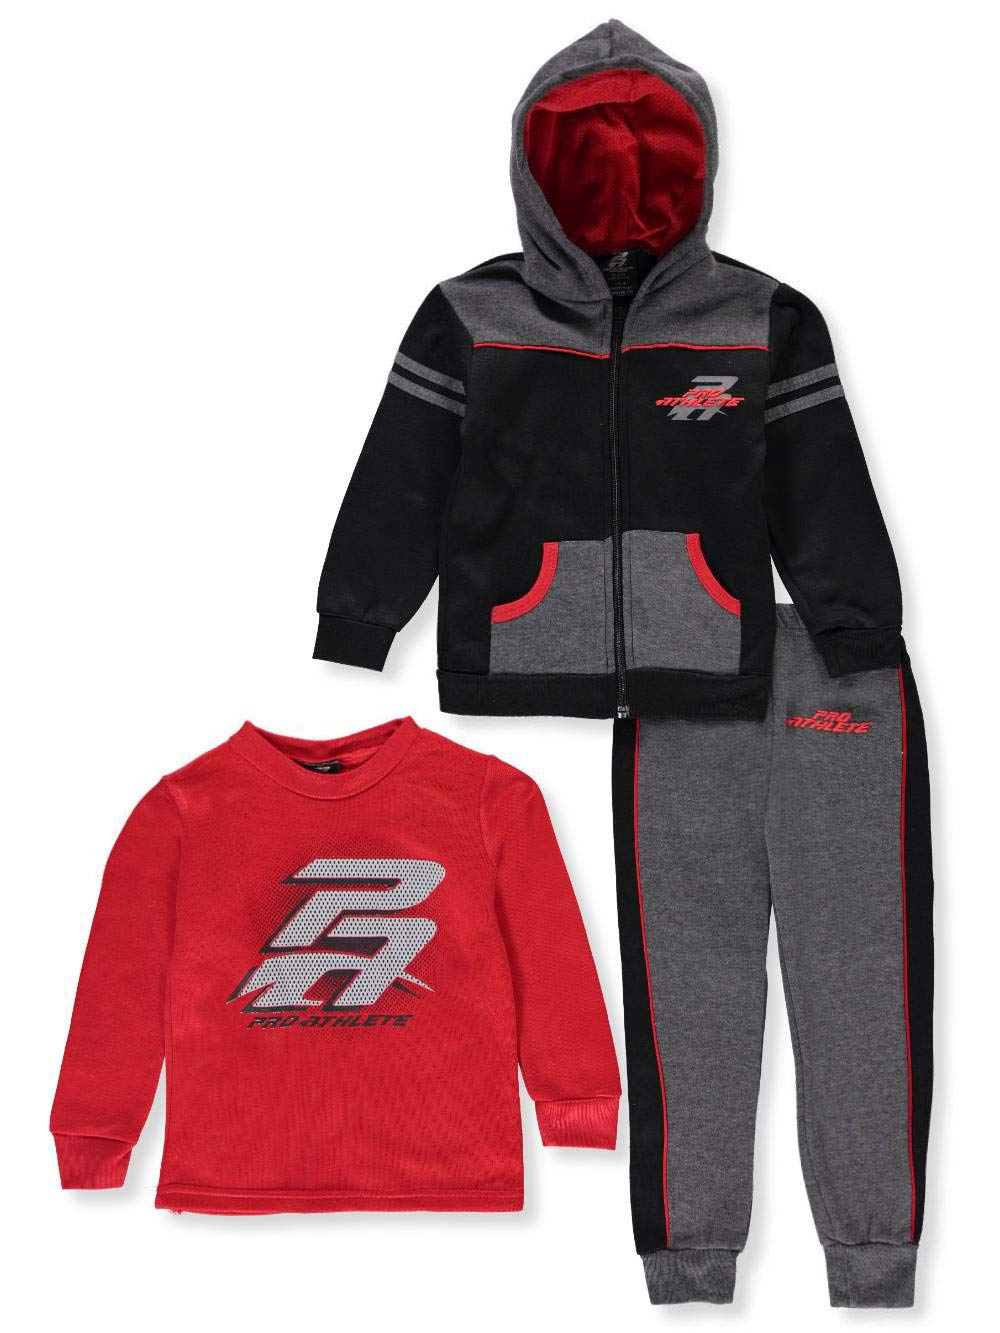 Pro Athlete Boys' 3-Piece Sweatsuit Pants Set